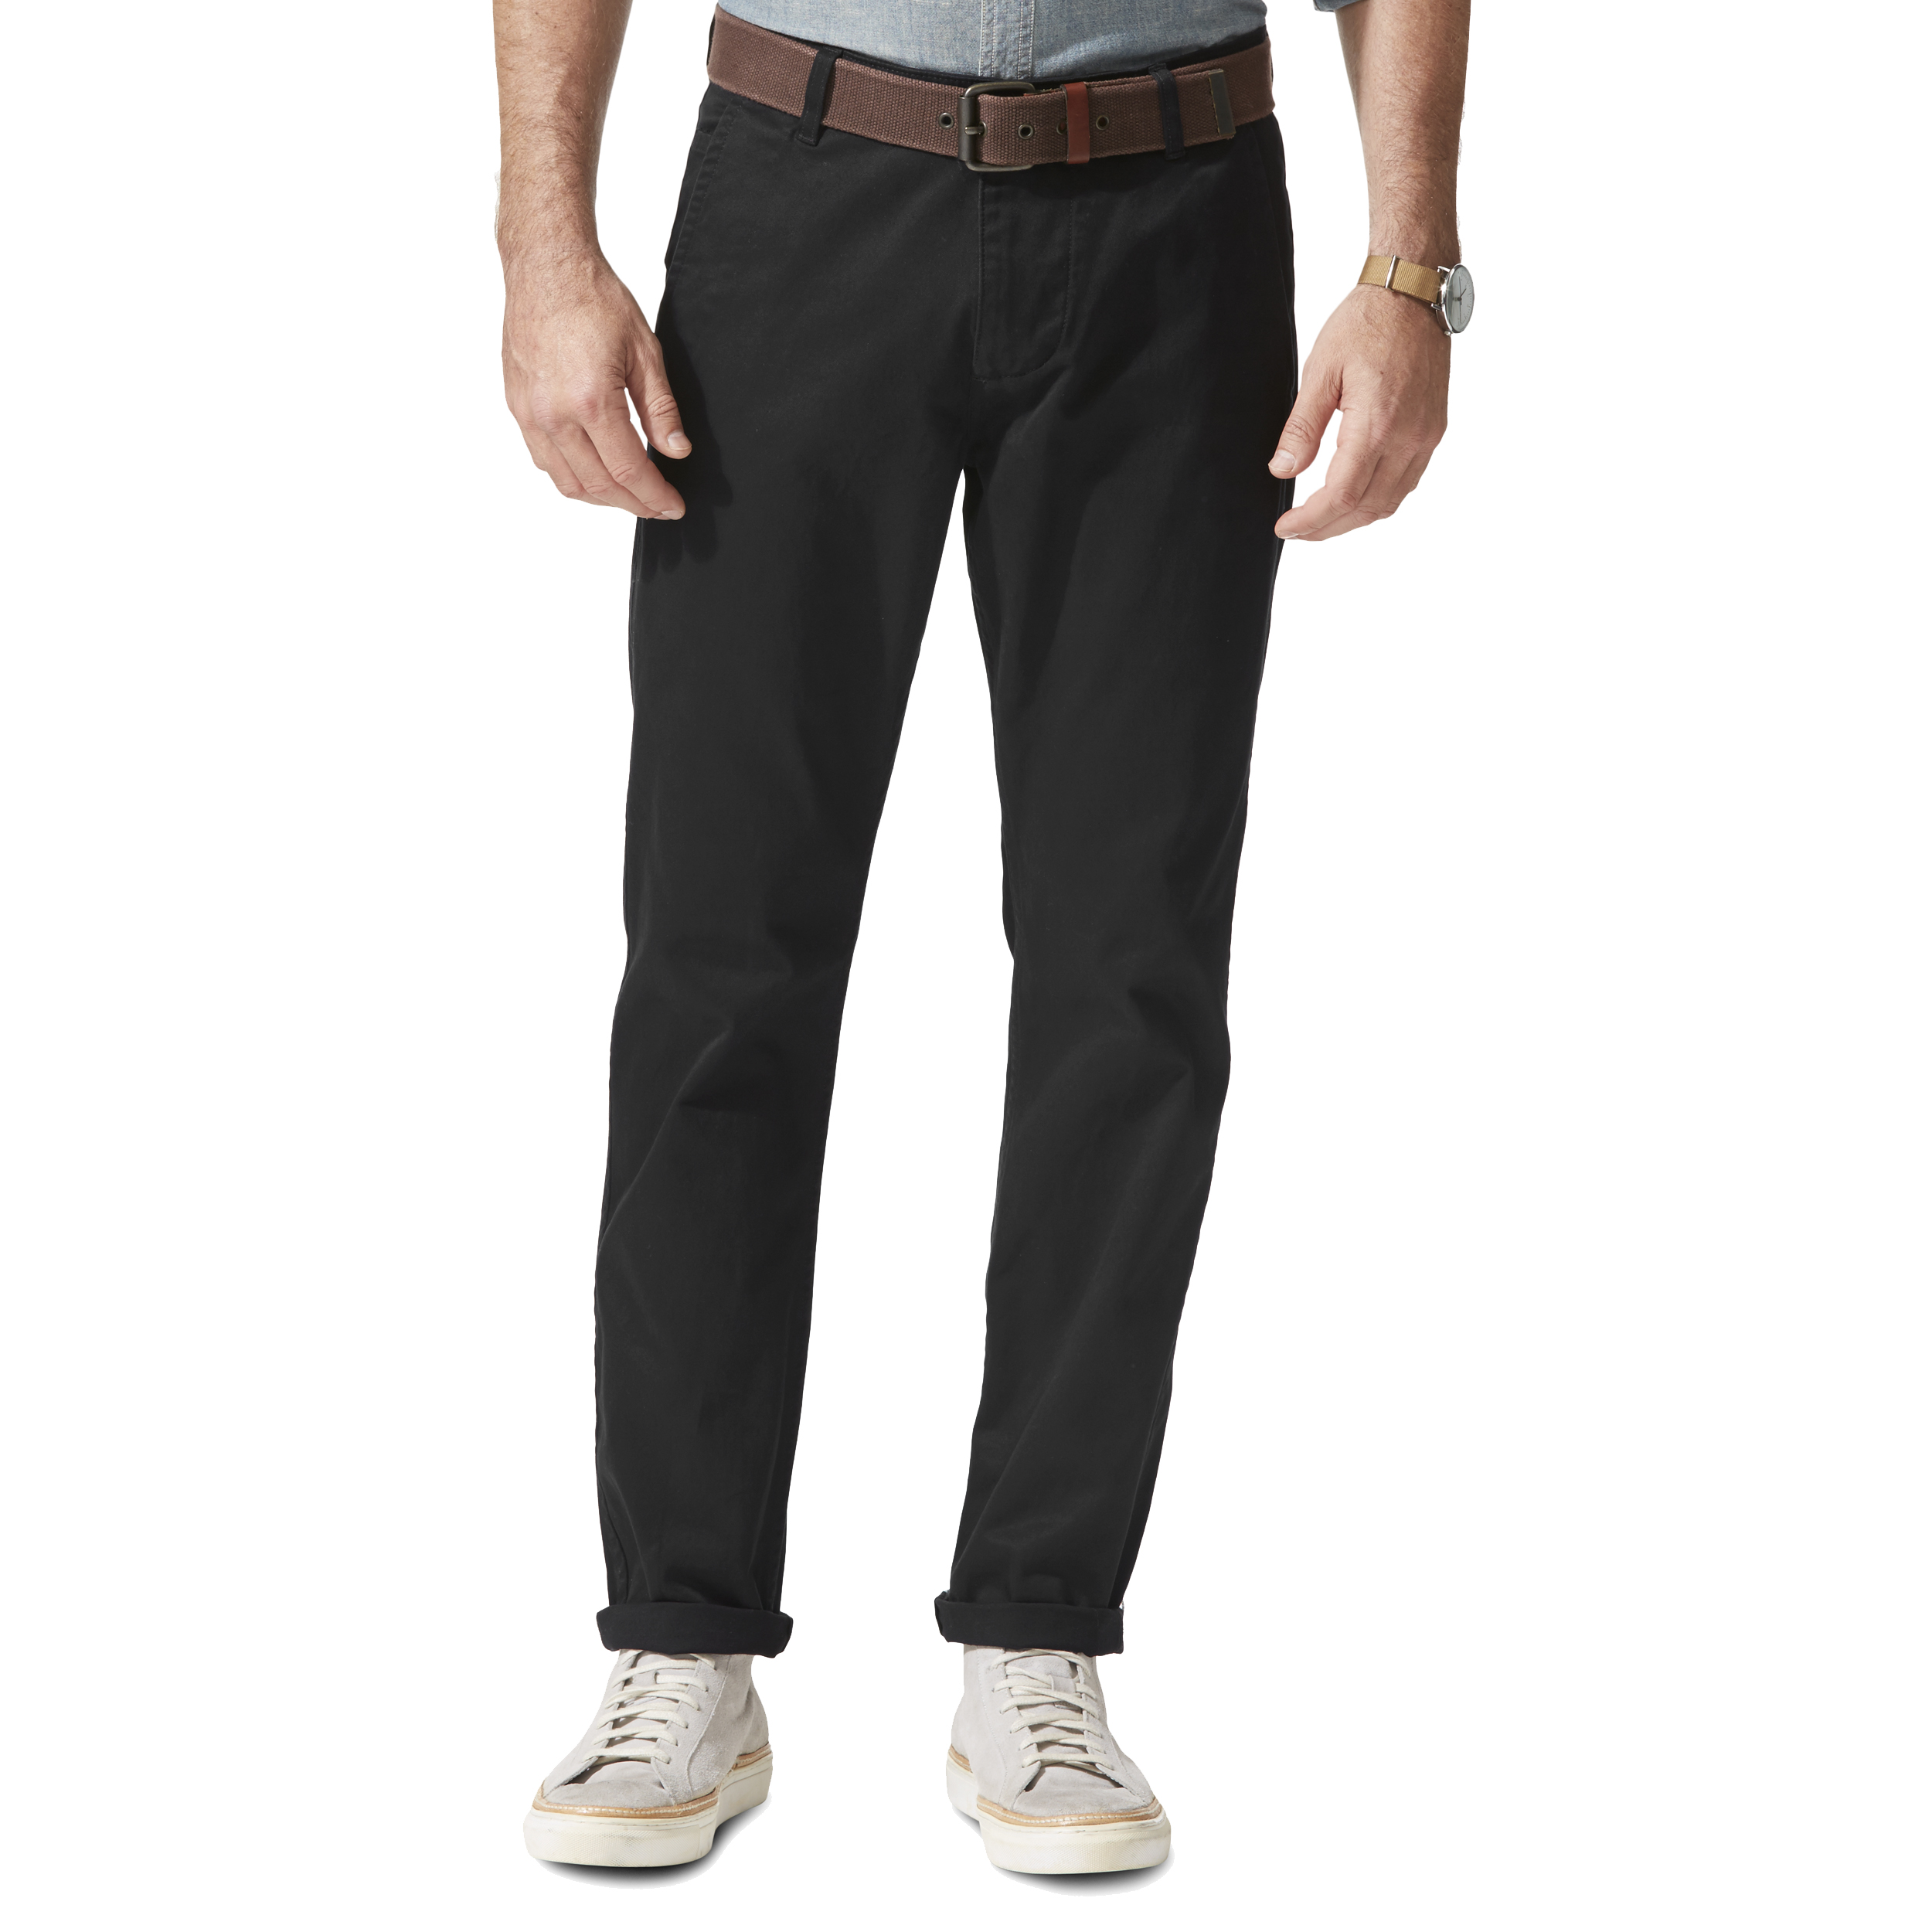 Pantalon alpha khaki original slim tapered  en twill noir